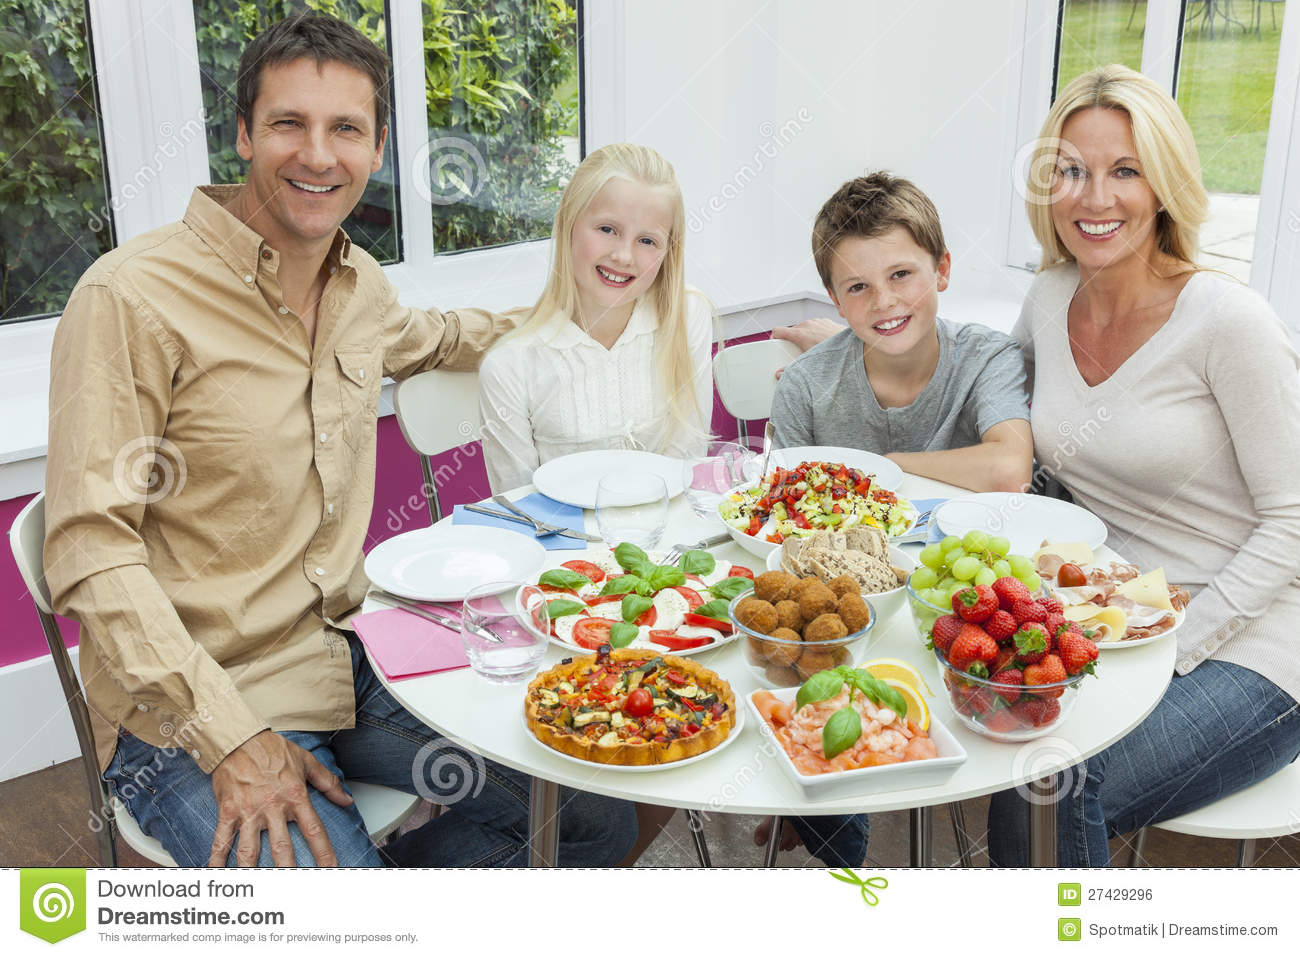 Parents children family healthy eating salad table royalty for Eating table